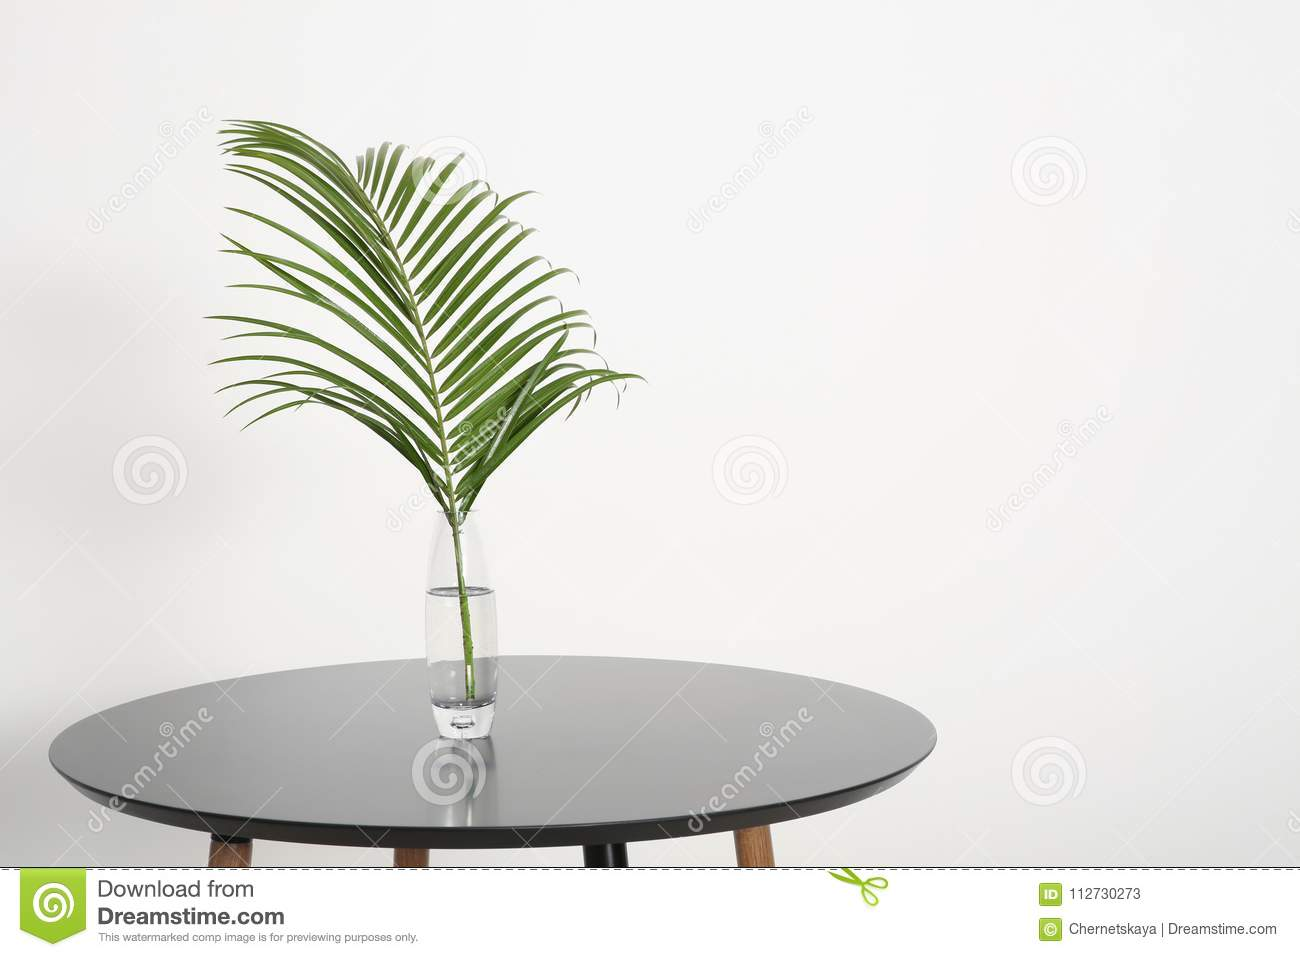 4 173 Tropical Leaf Vase Photos Free Royalty Free Stock Photos From Dreamstime Are you searching for tropical leaves png images or vector? https www dreamstime com tropical leaf glass vase table indoors tropical leaf glass vase table indoors idea modern stylish interior image112730273